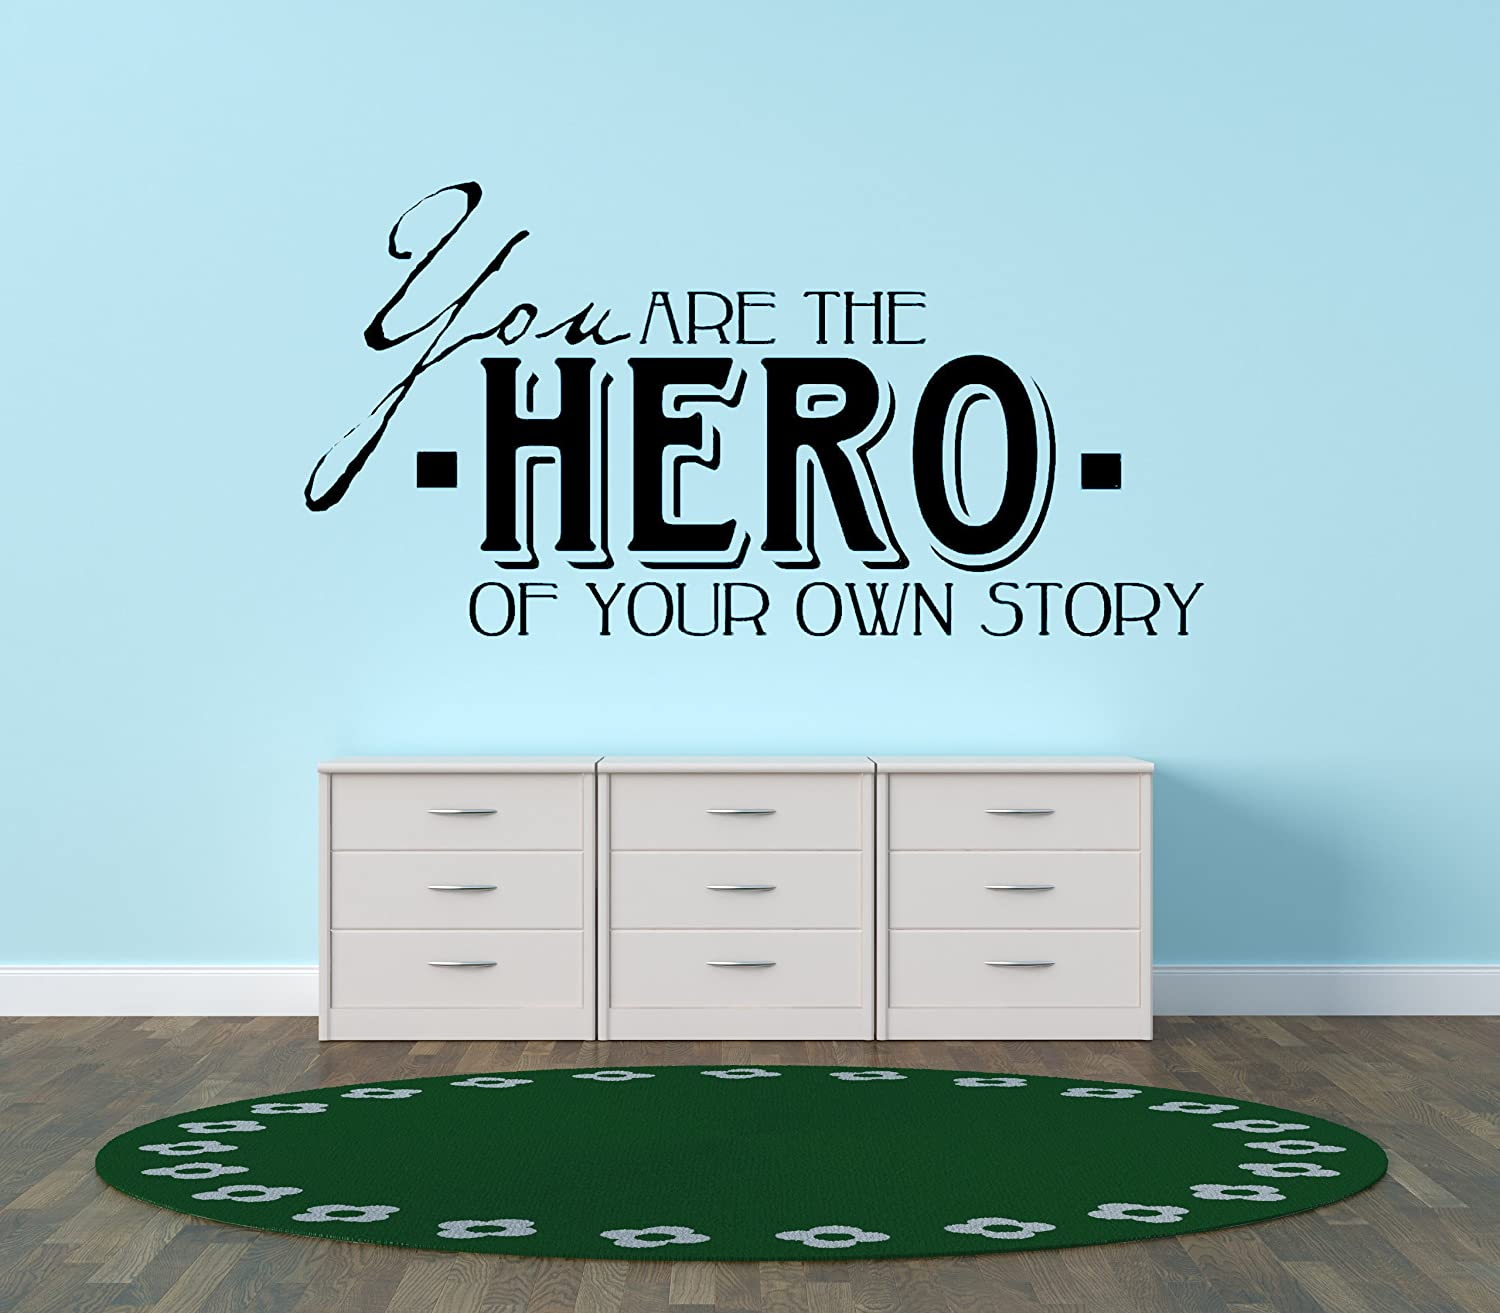 Design Design with : Vinyl You Are The Hero 20x20 Of Your Own Story Picture Art - Peel & Stick Vinyl Wall Decal Sticker Size : 20x20 Color : Black Black by Design with Vinyl B00H1YNRIK, ナカジ:3e6c1b27 --- jpworks.be